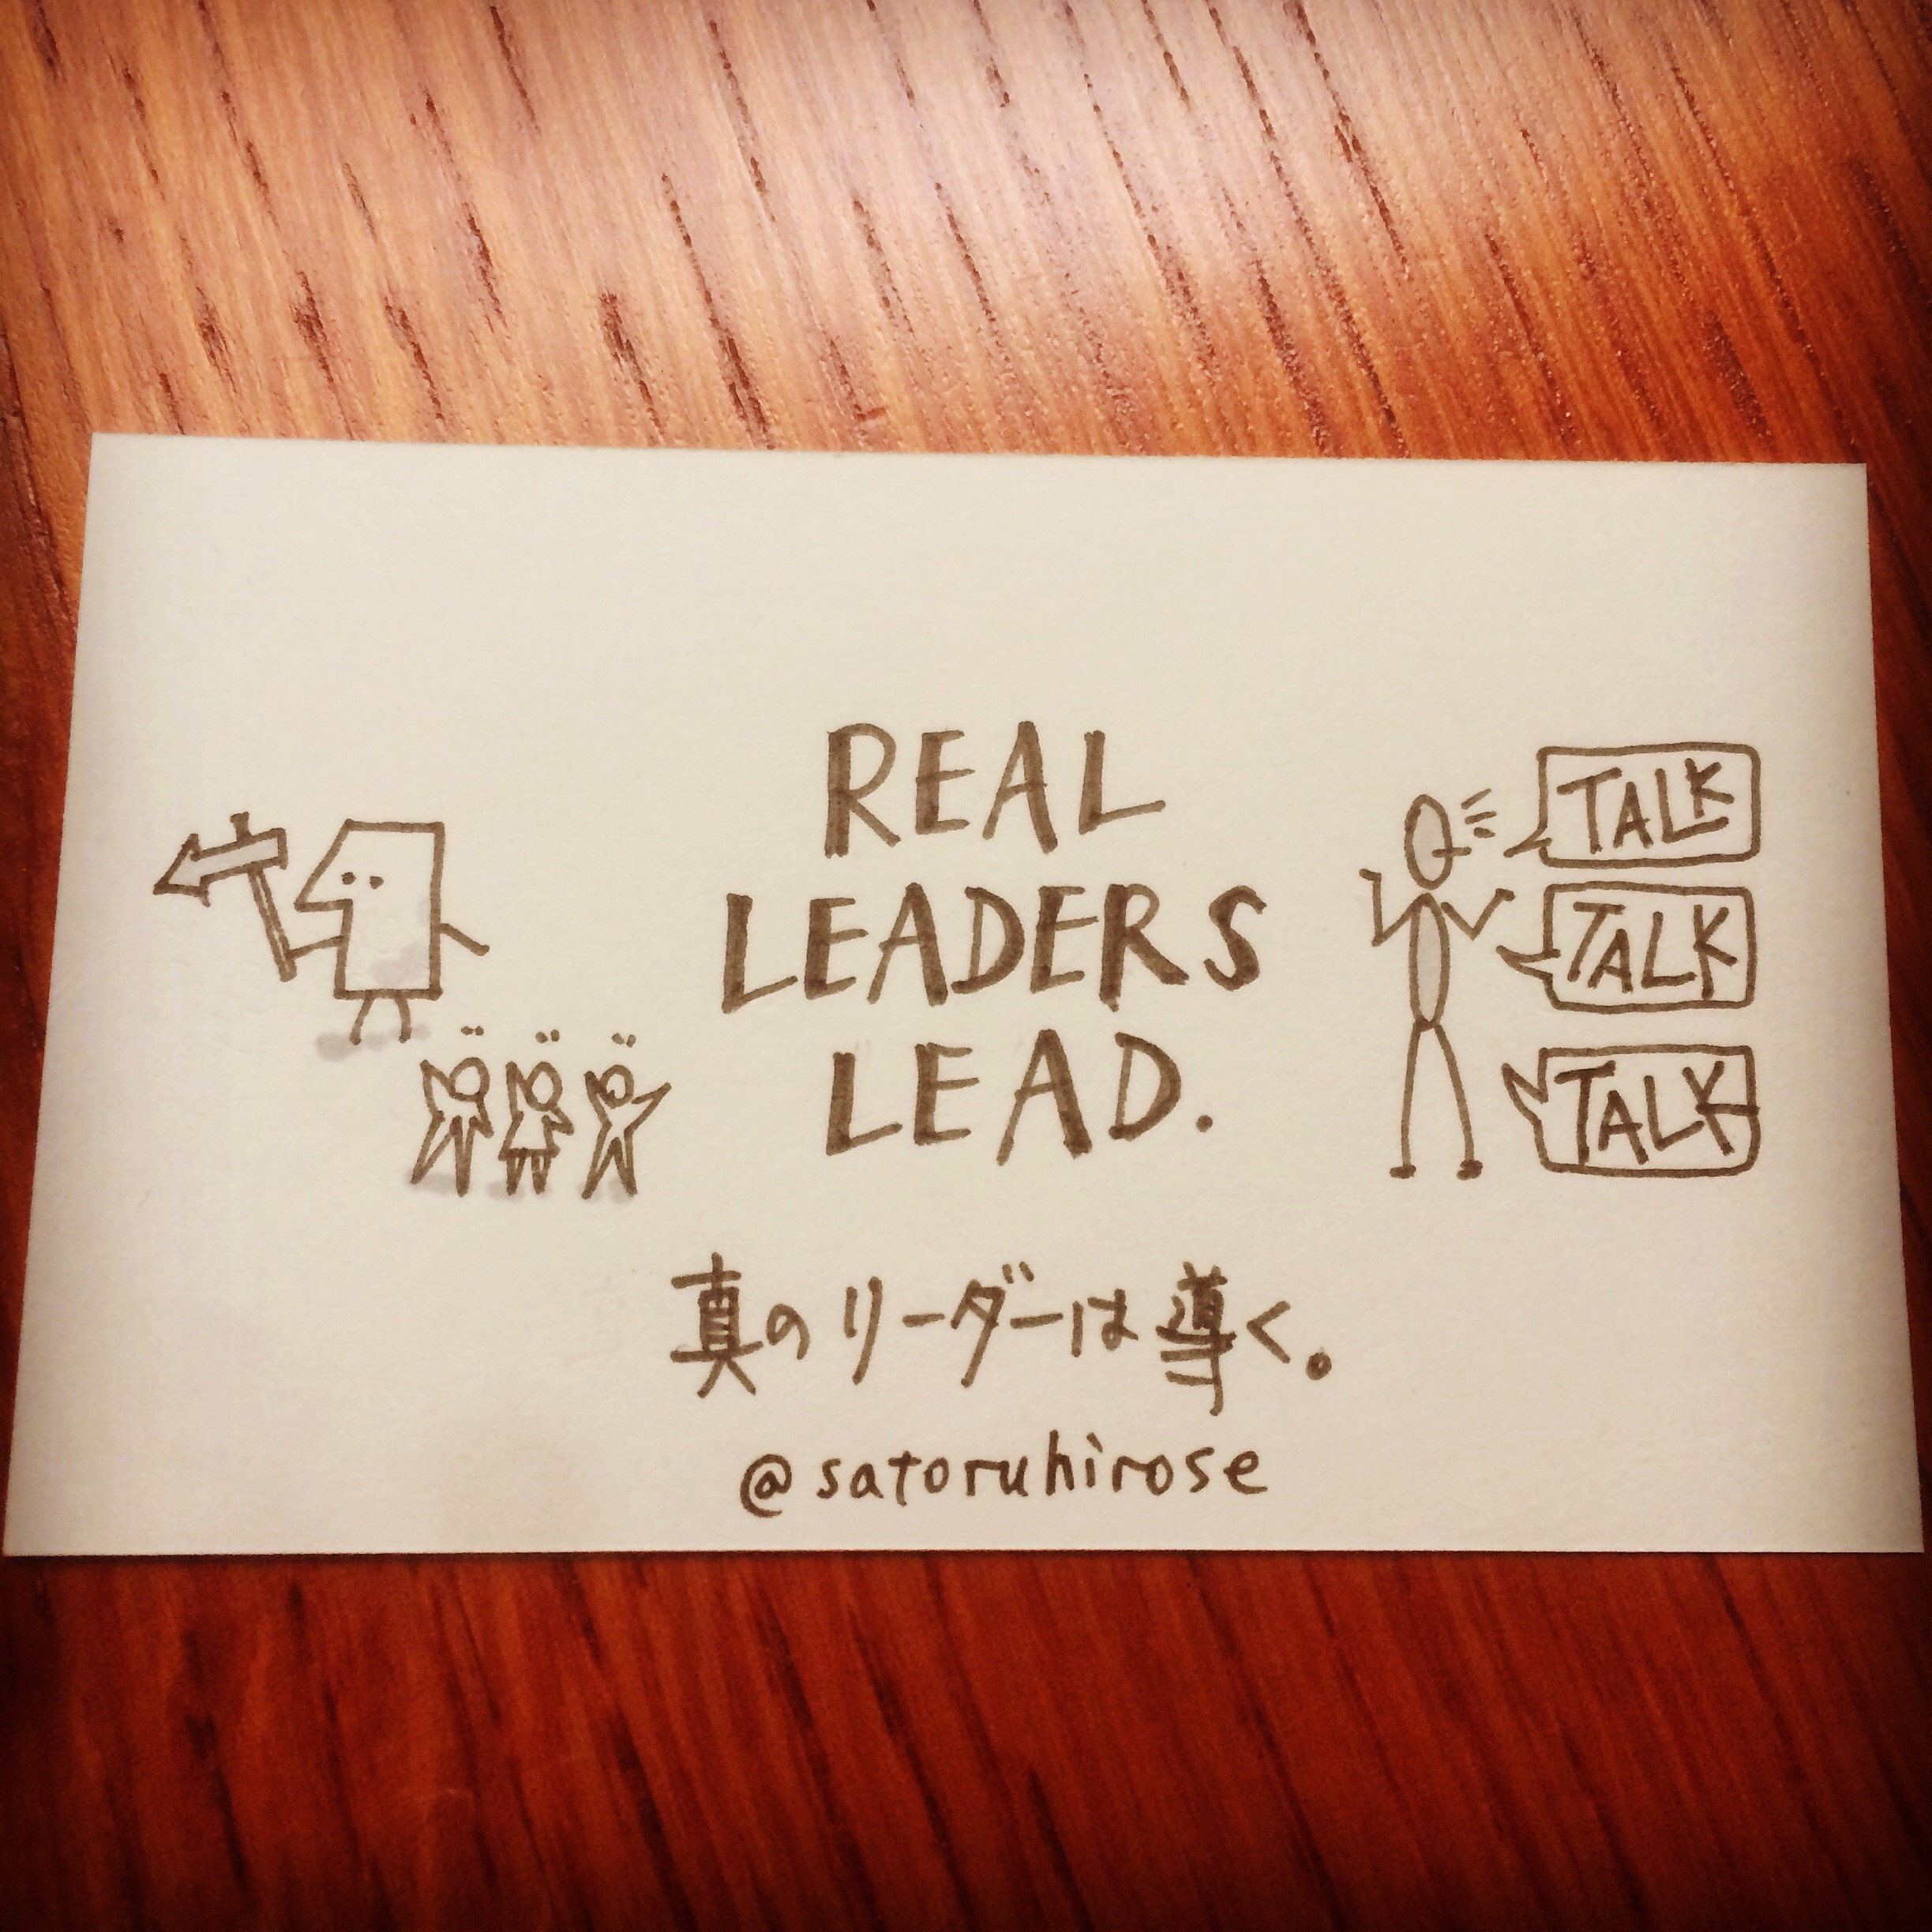 Real leaders lead.